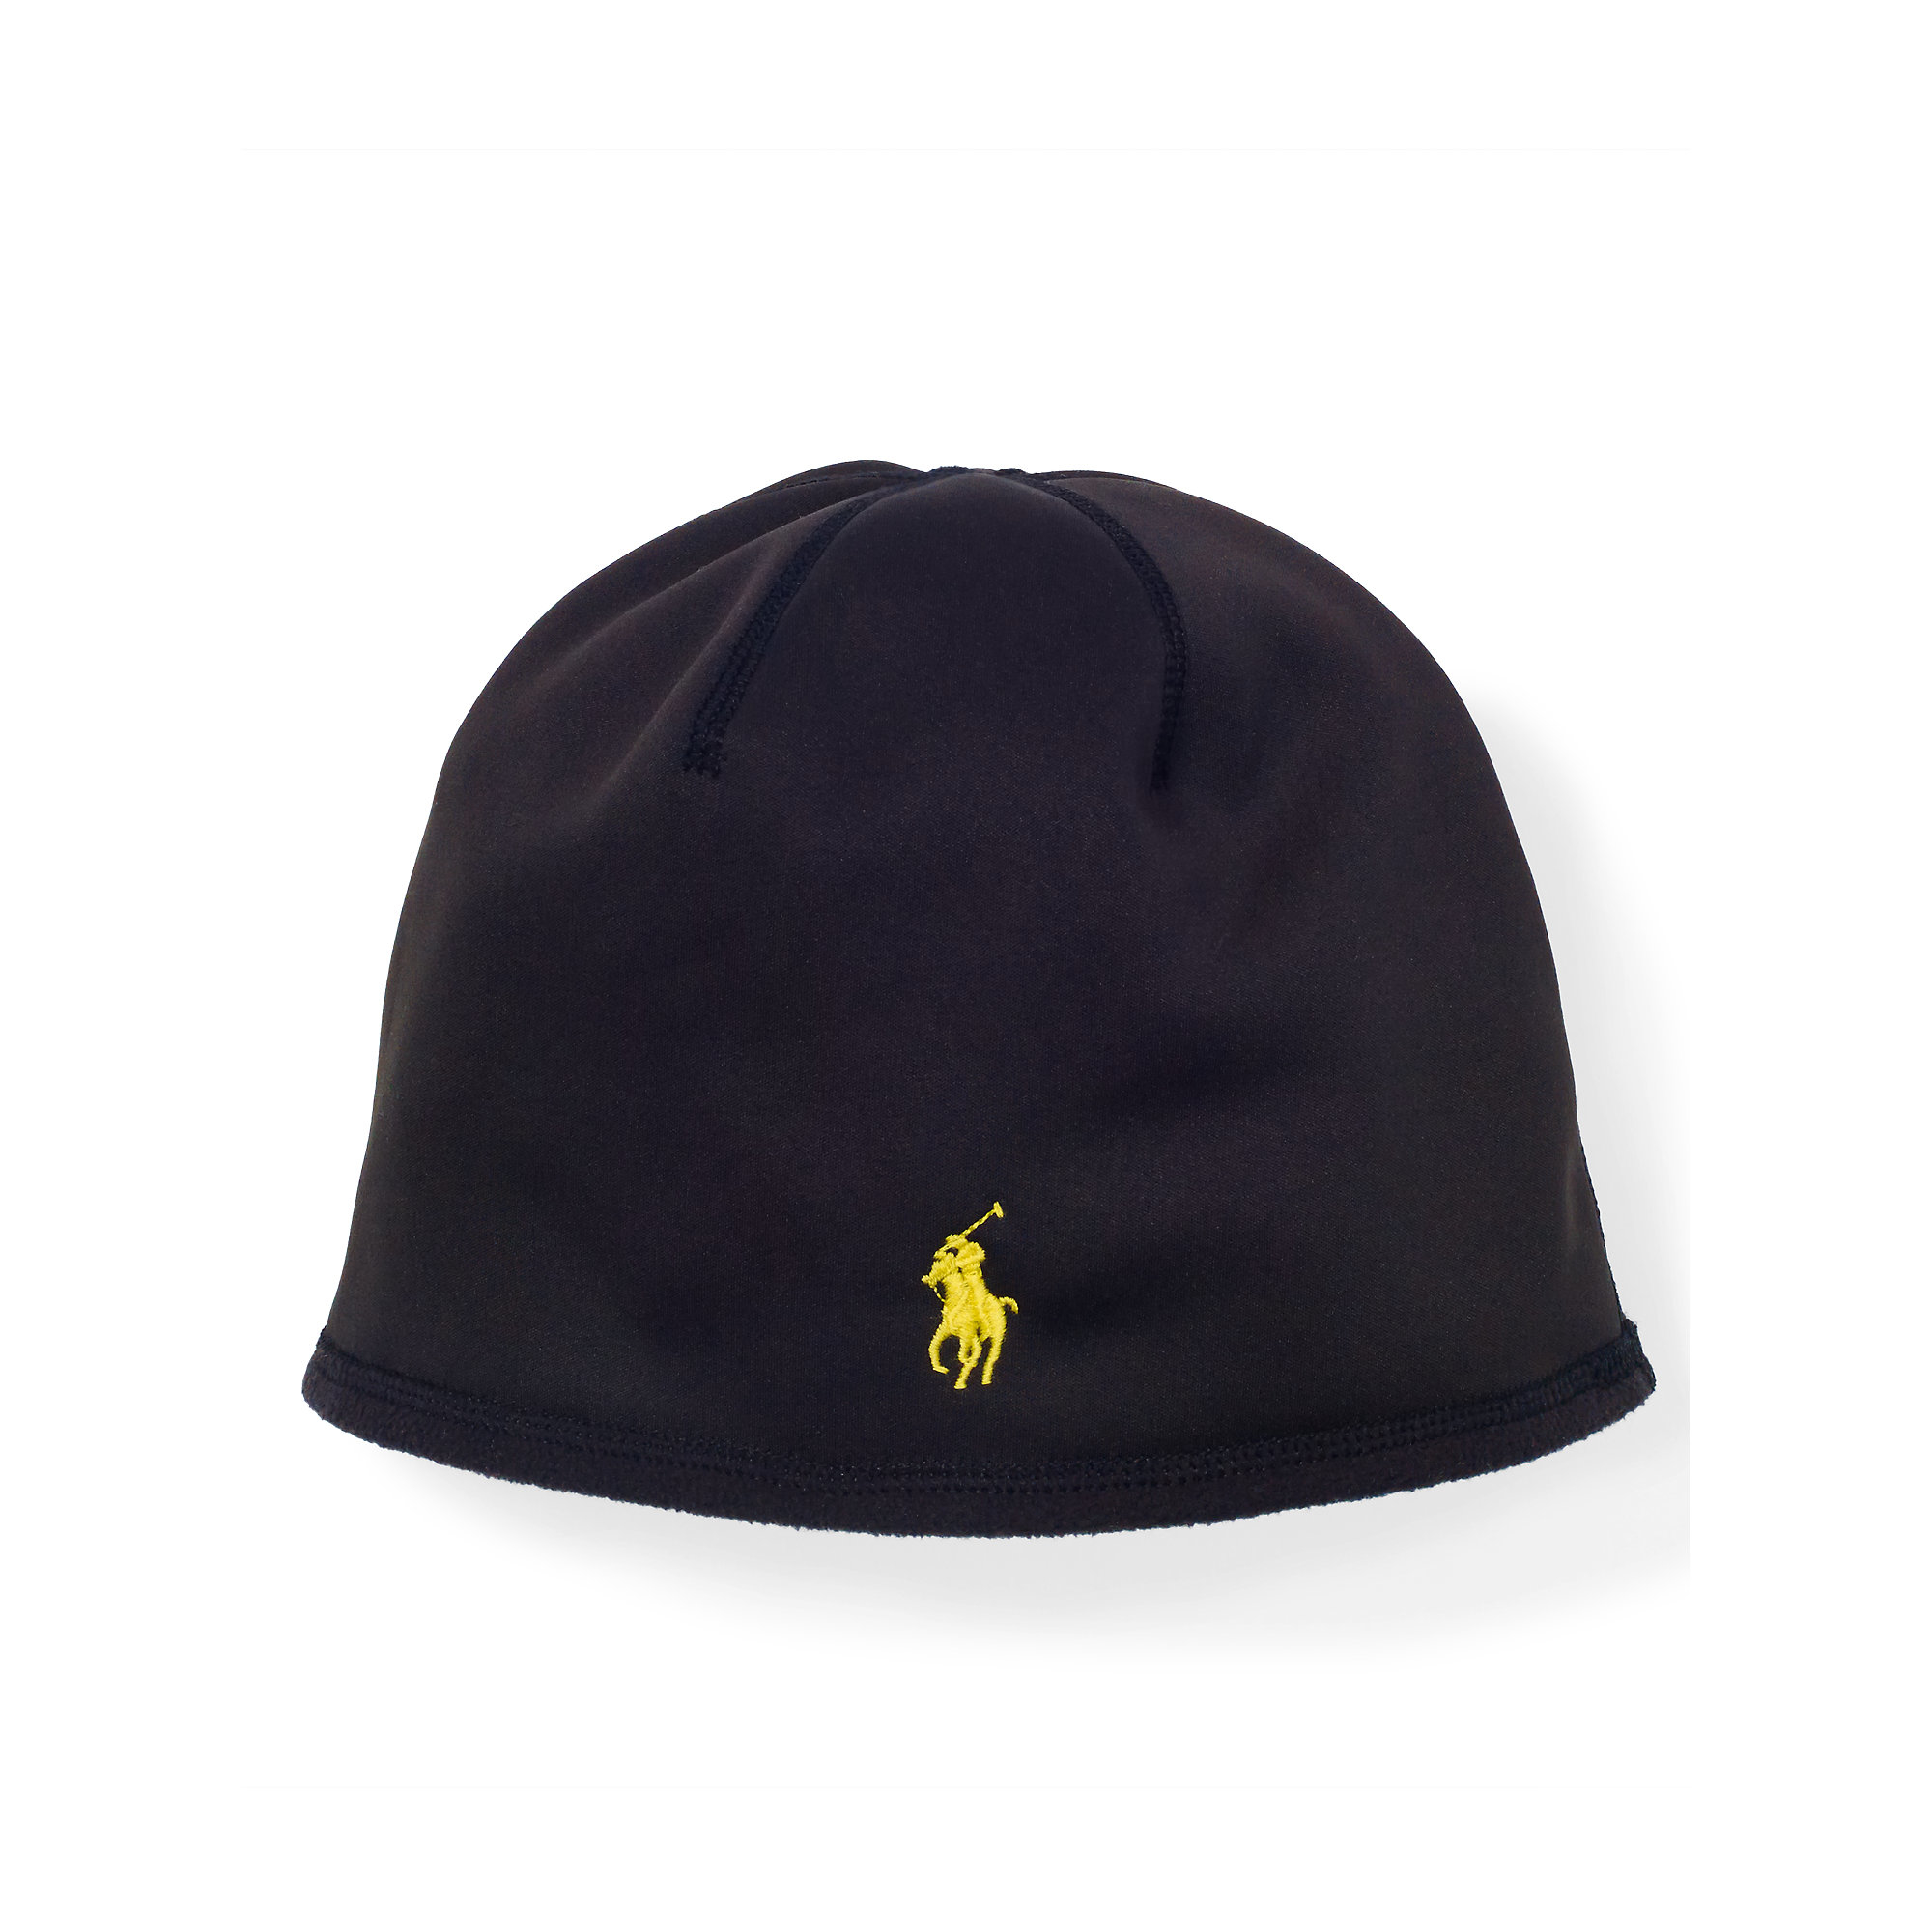 Lyst - Polo Ralph Lauren Fleece Skull Cap in Black for Men ee31c77adba